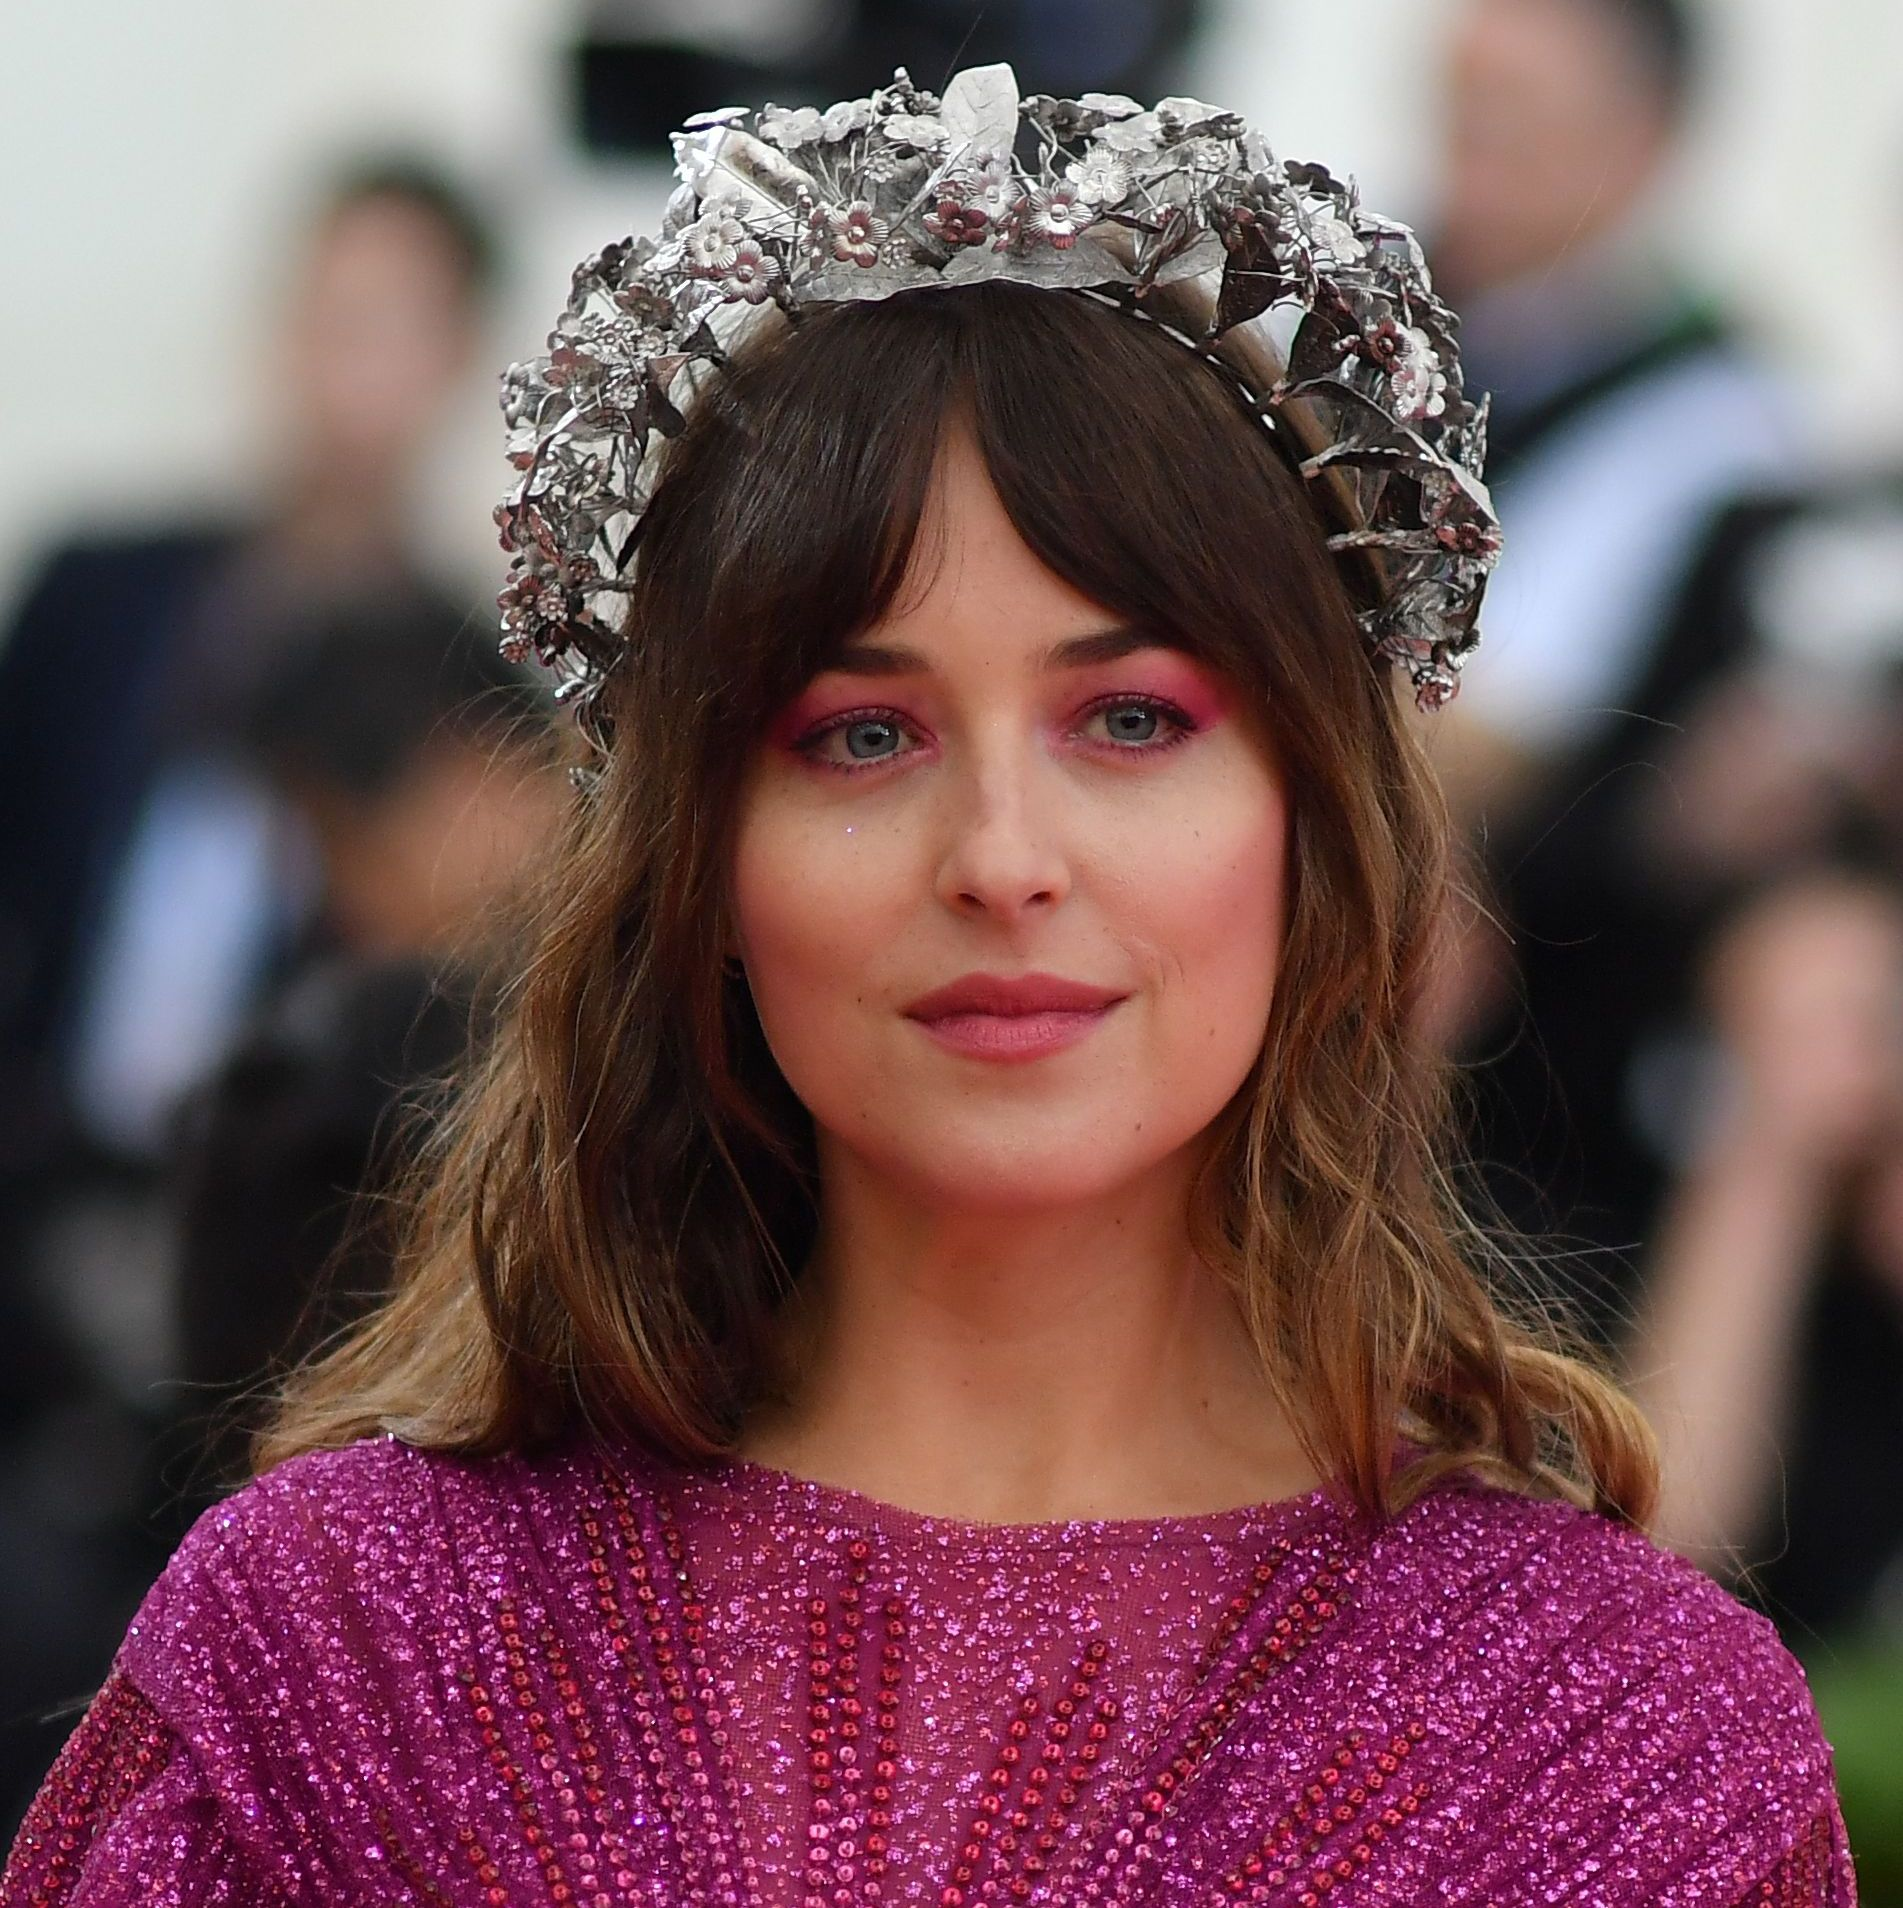 Dakota Johnson Johnson proved you can still look festive while keeping it simple: a Silver crown-headband dressed up her usual wavy hair while hot pink eyeshadow added some fun to her makeup look.